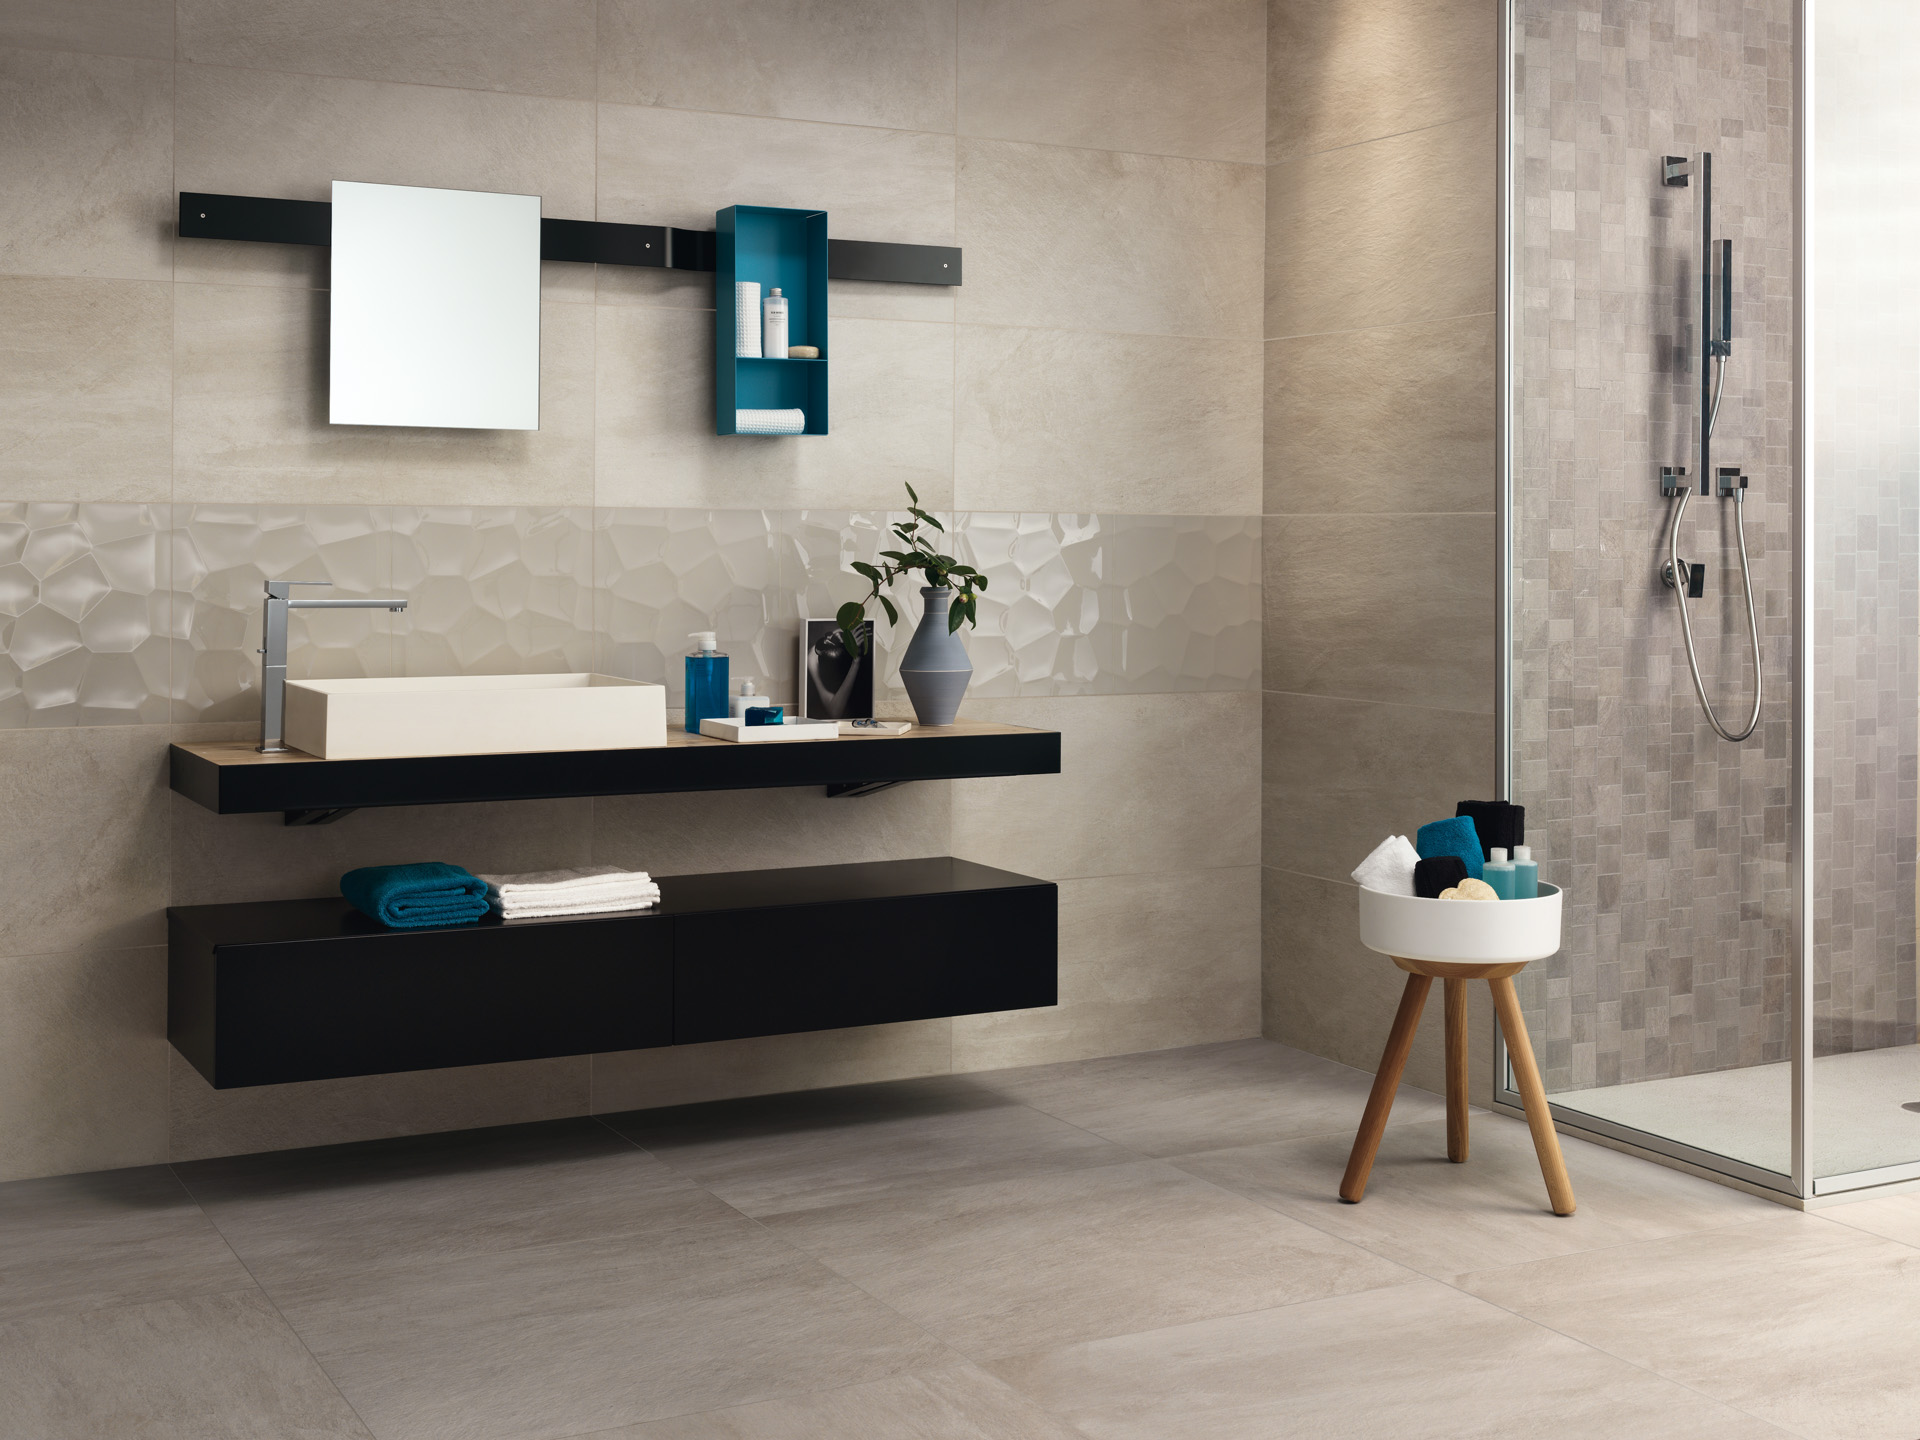 Ceramiche Gardenia Orchidea ceramic tiles floor and wall coverings in porcelain stoneware